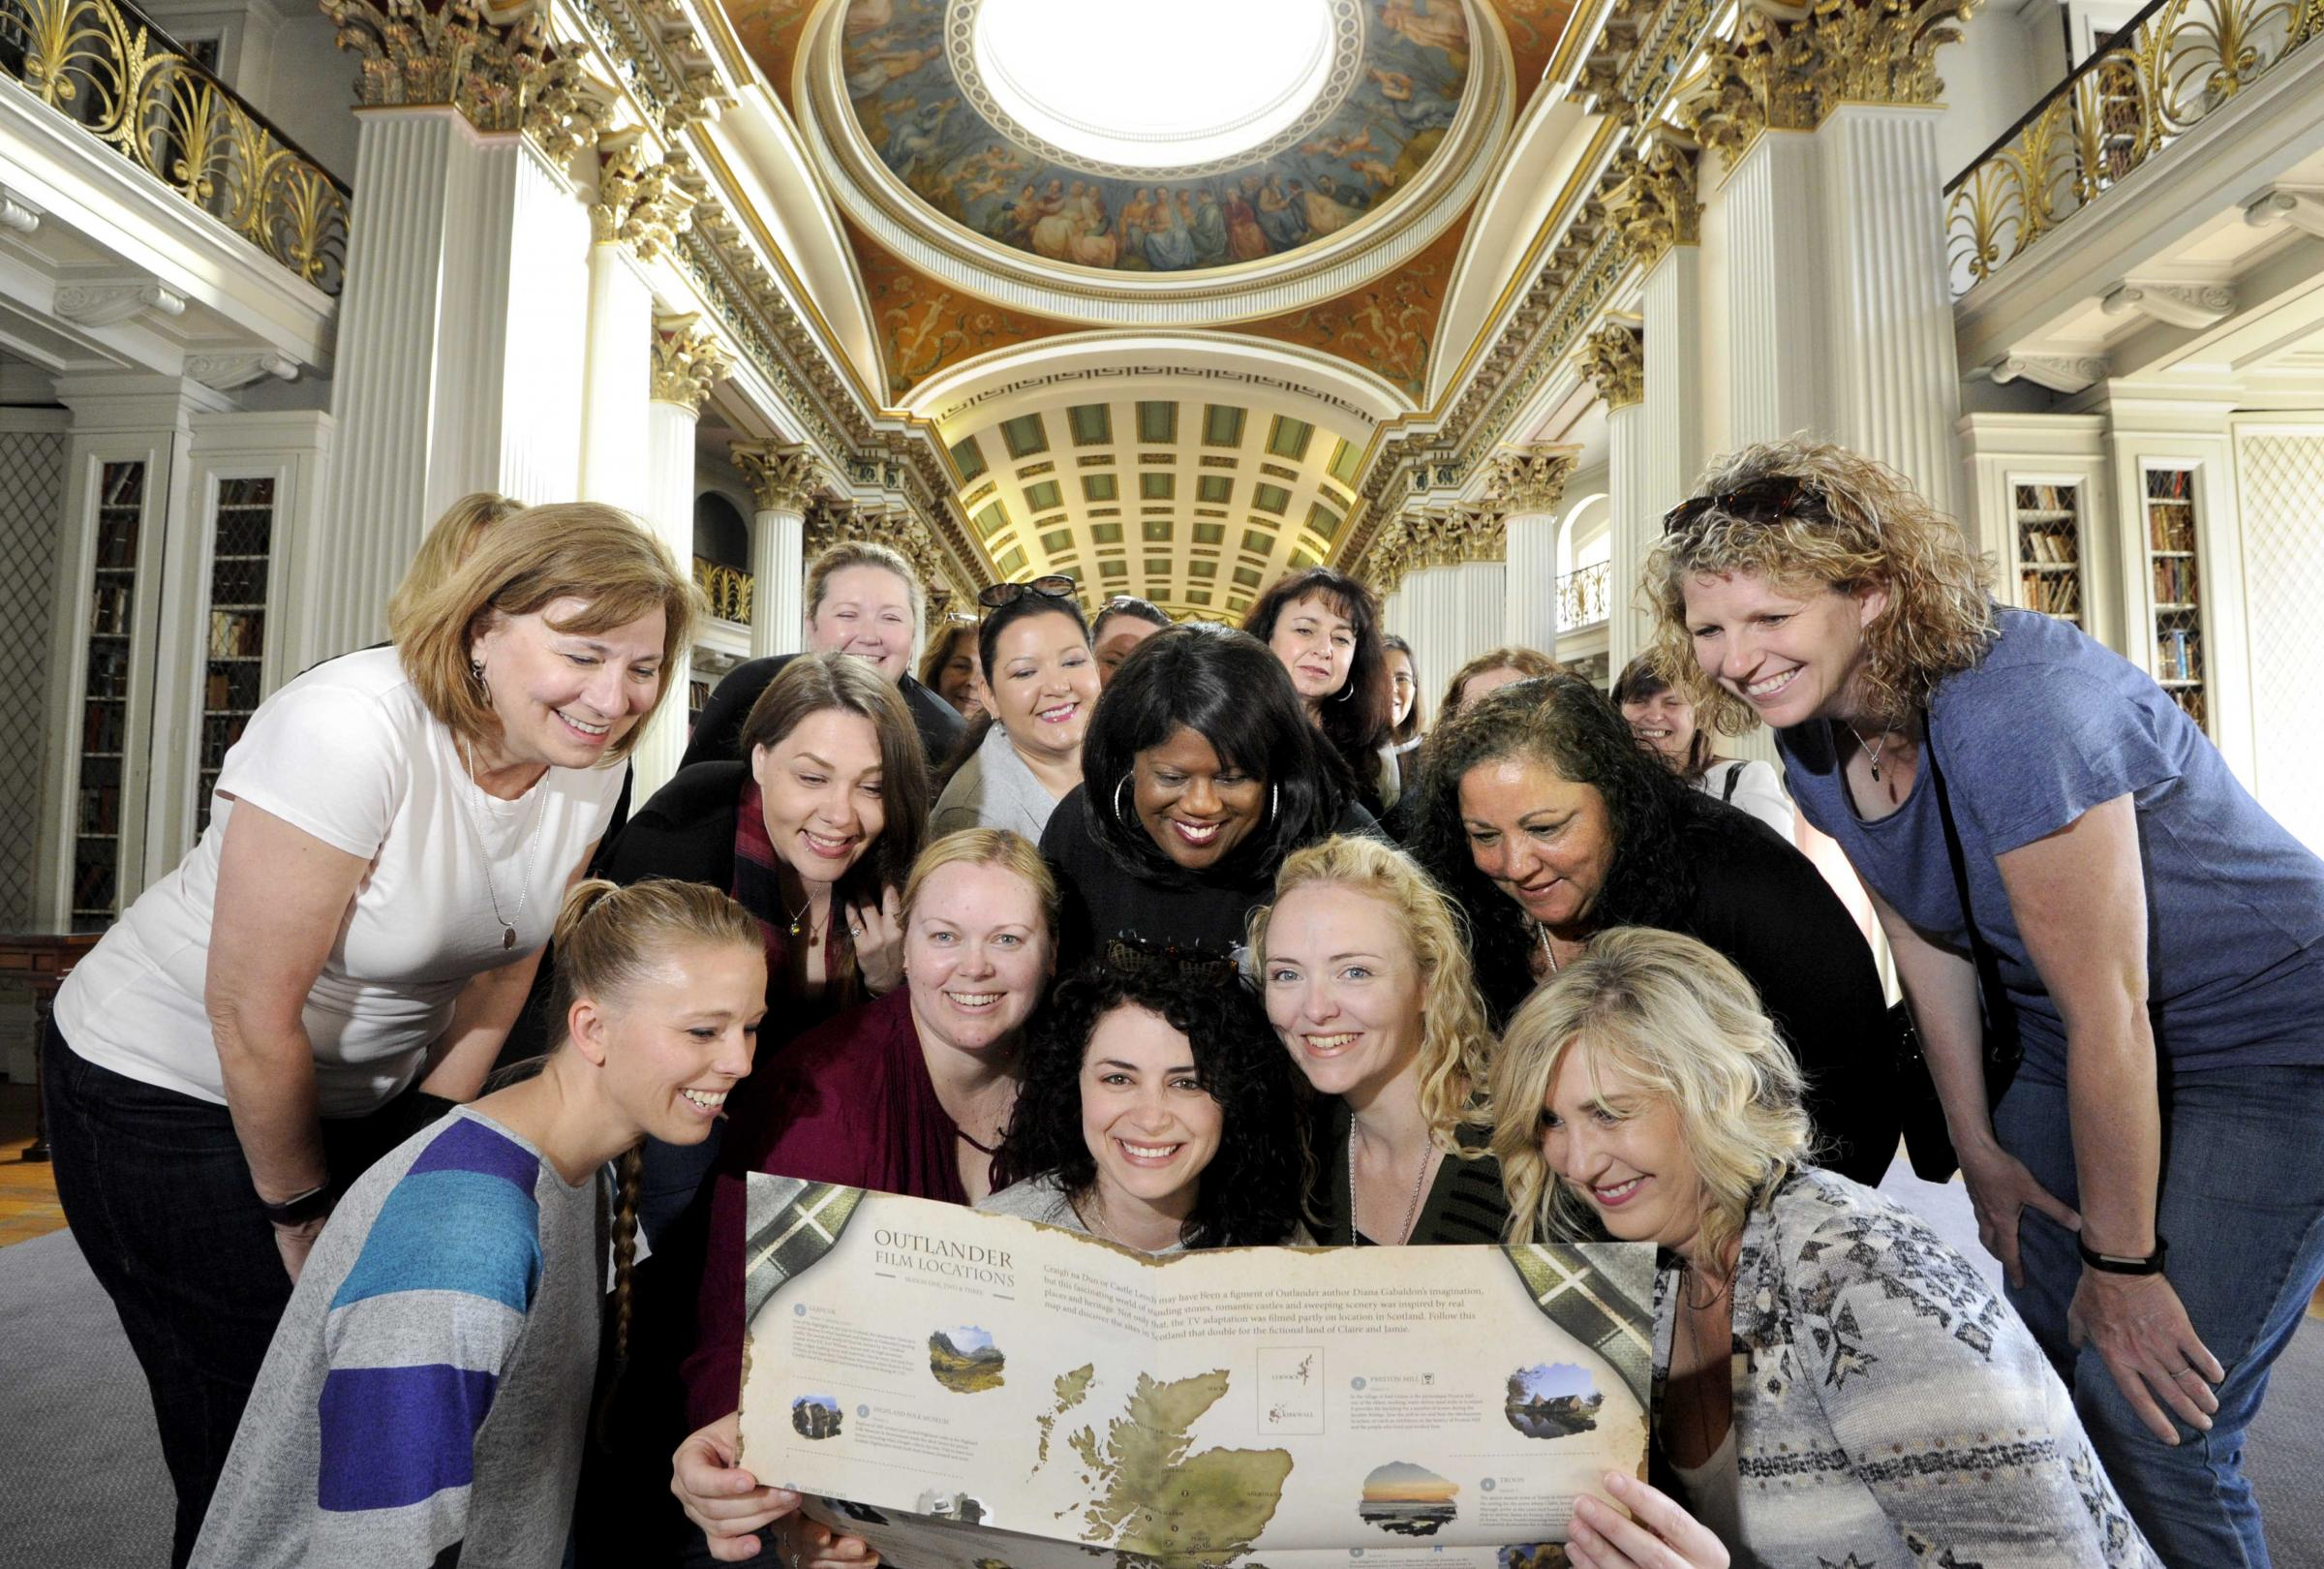 Outlander Fans in The Signet Library, Edinburgh